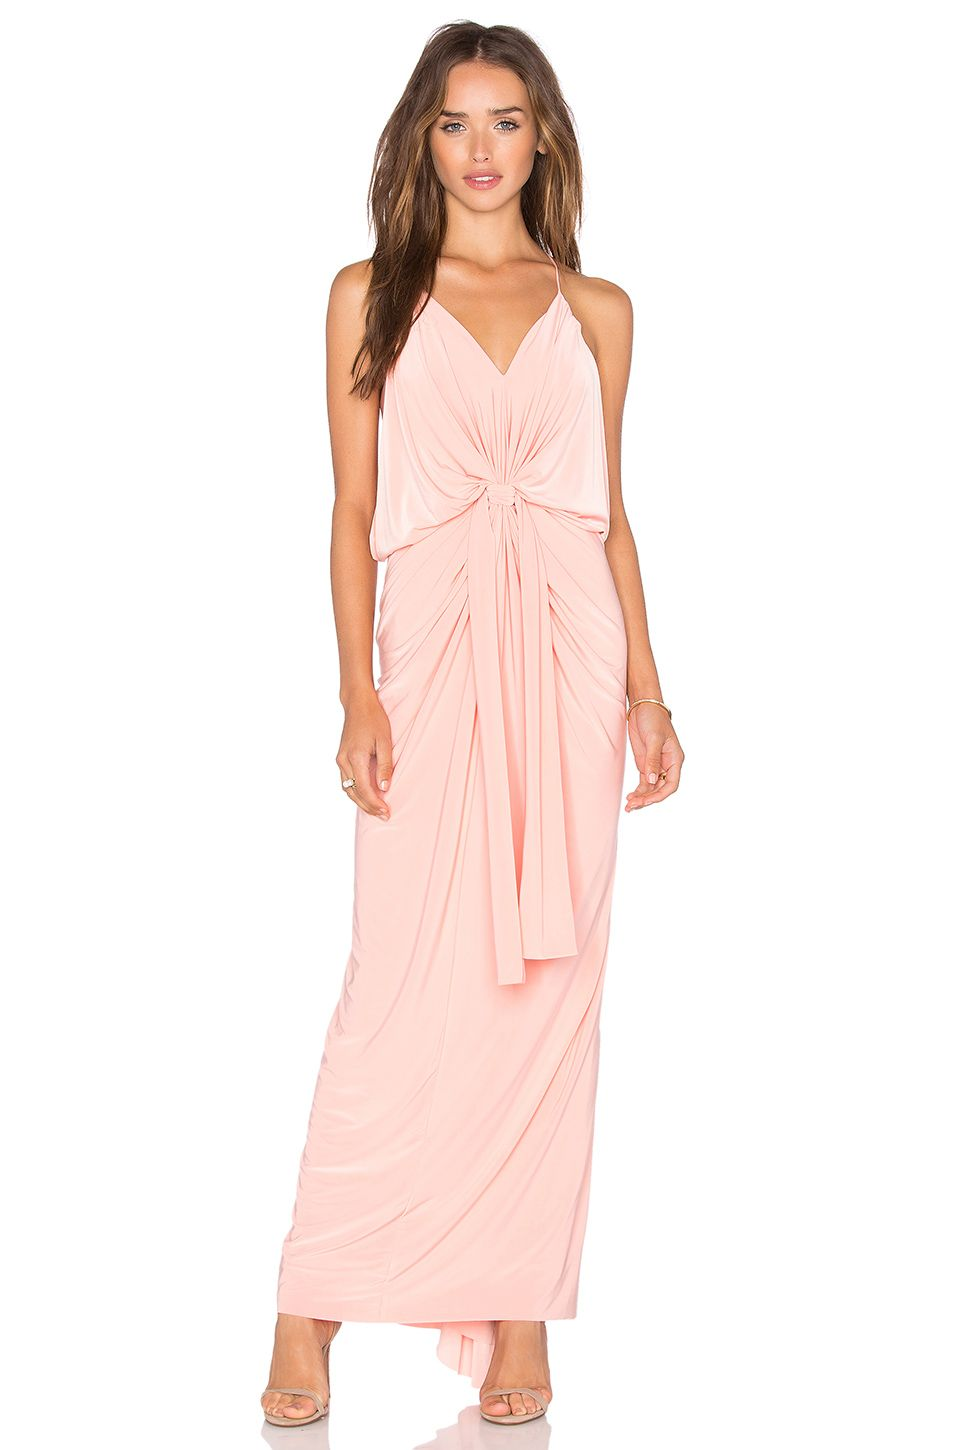 MISA Los Angeles Domino Tie Front Maxi Dress in Blush | Fashion ...